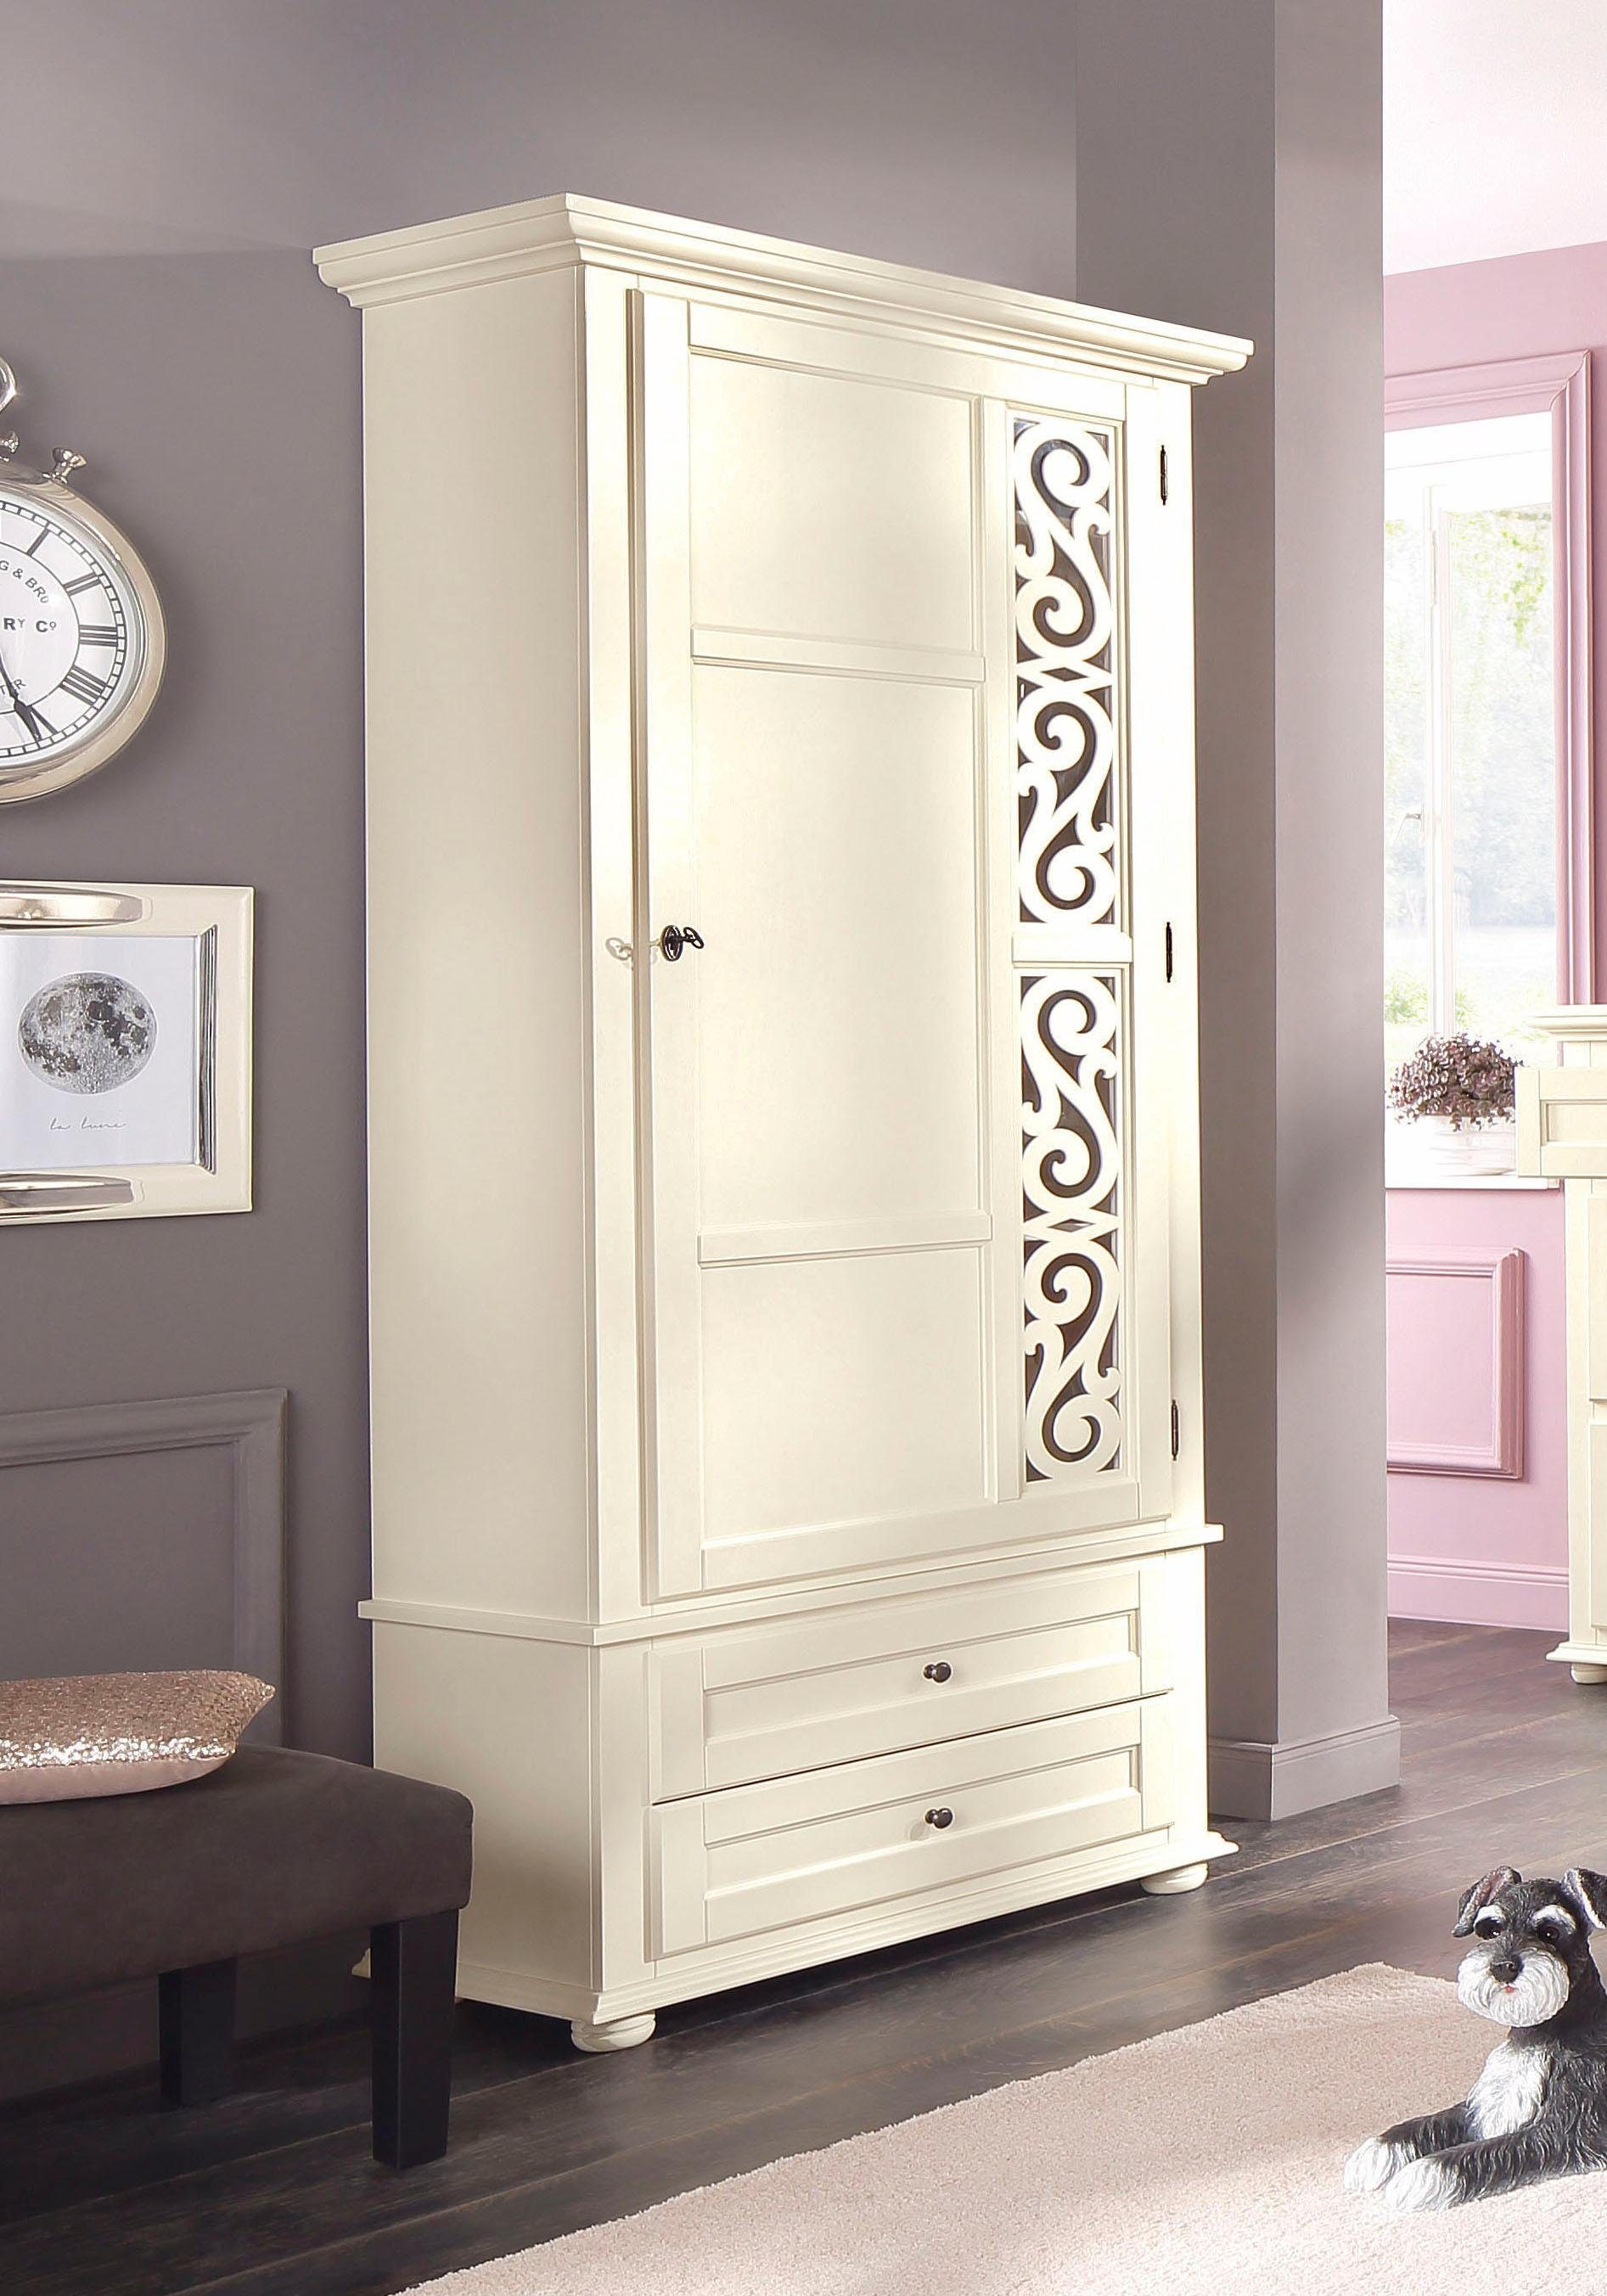 Küche Creme Holz Premium Collection By Home Affaire Garderobenschrank